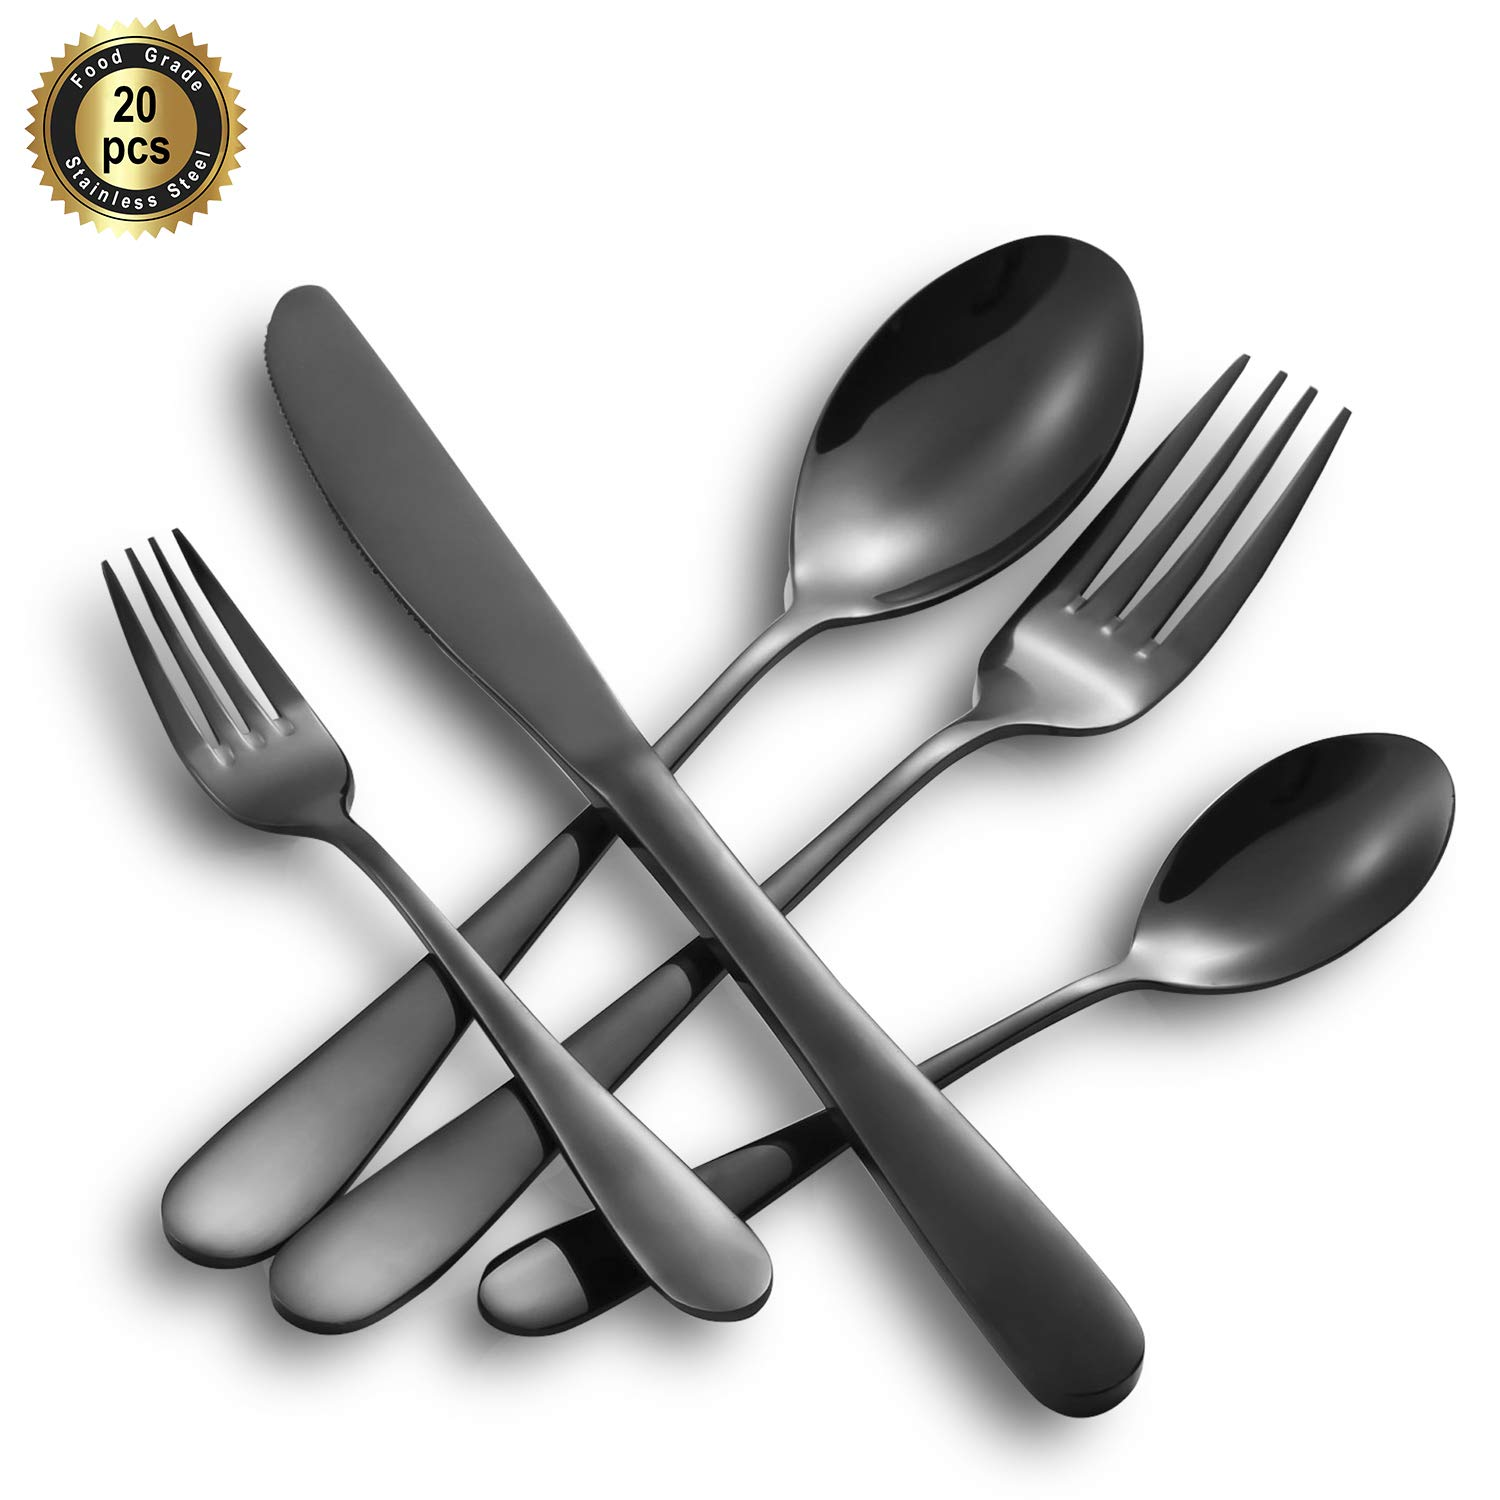 HF HOFTEN Black Silverware Set, 20 Piece Food Grade Stainless Steel Flatware Set Include Fork Spoon Knife Utensils for Daily Use and Party, Service for 4, Anti Rust, Safe in Dishwasher(HD822-BL)